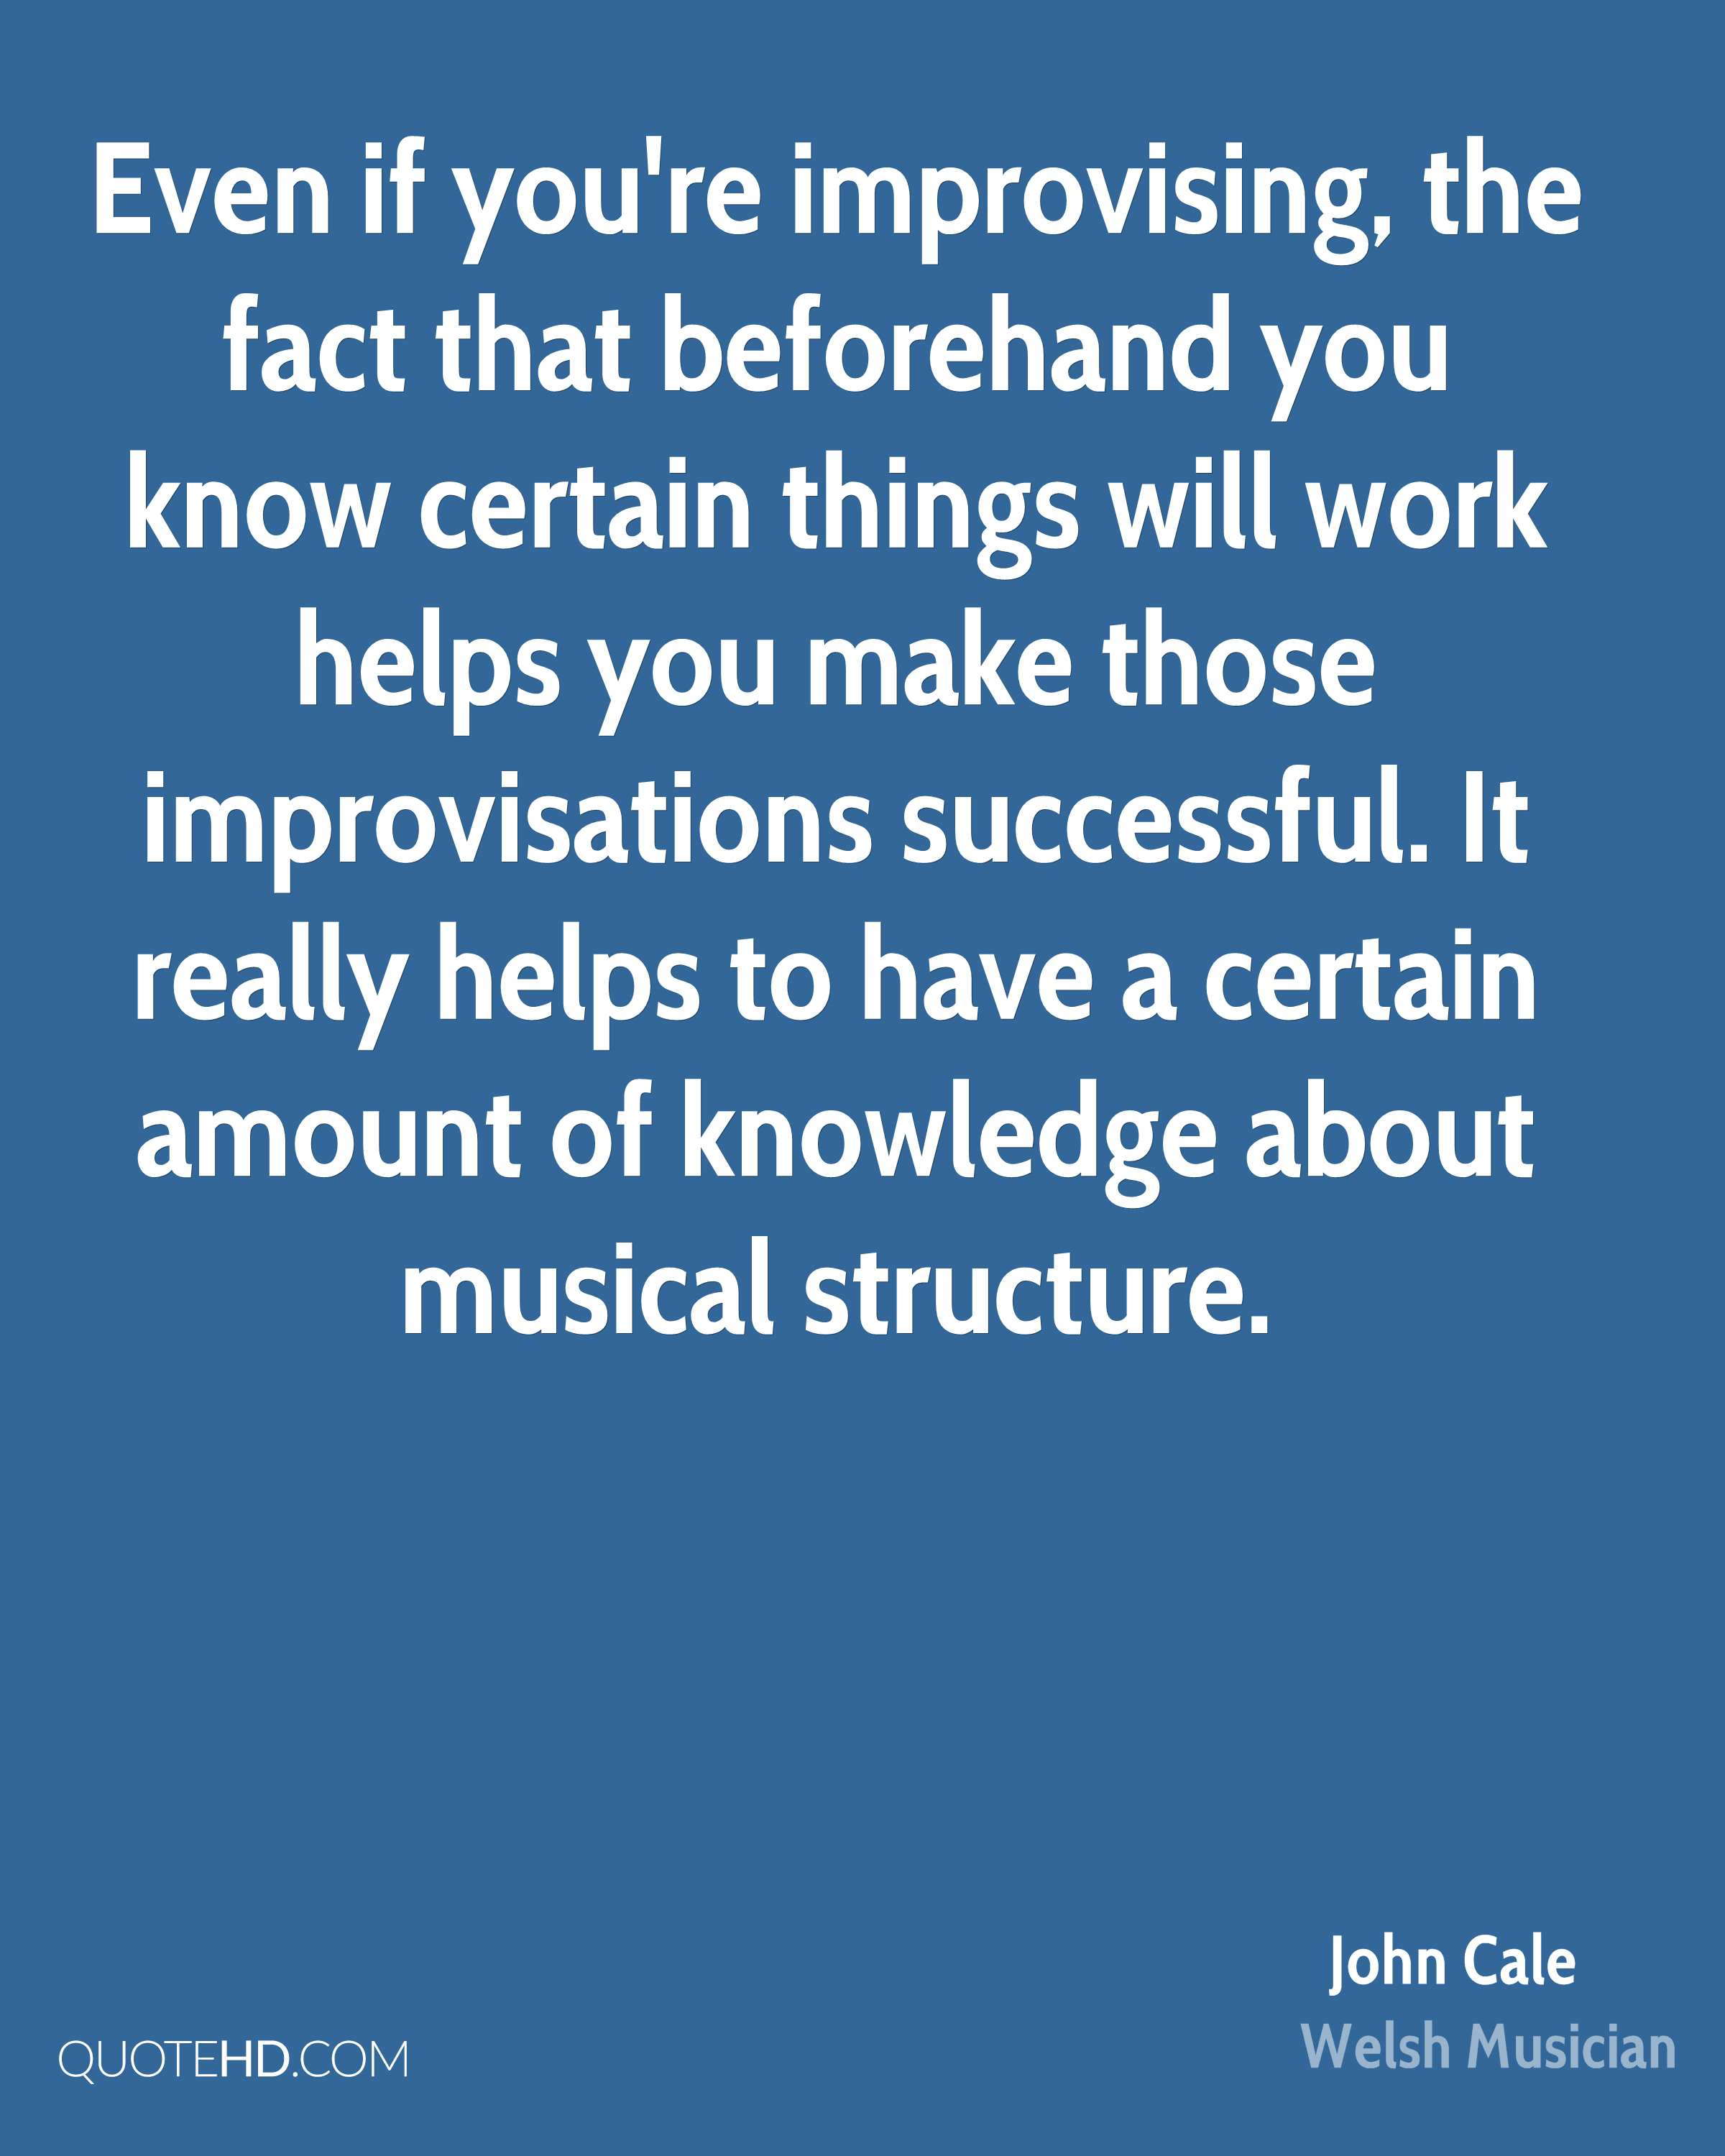 Even if you're improvising, the fact that beforehand you know certain things will work helps you make those improvisations successful. It really helps to have a certain amount of knowledge about musical structure.